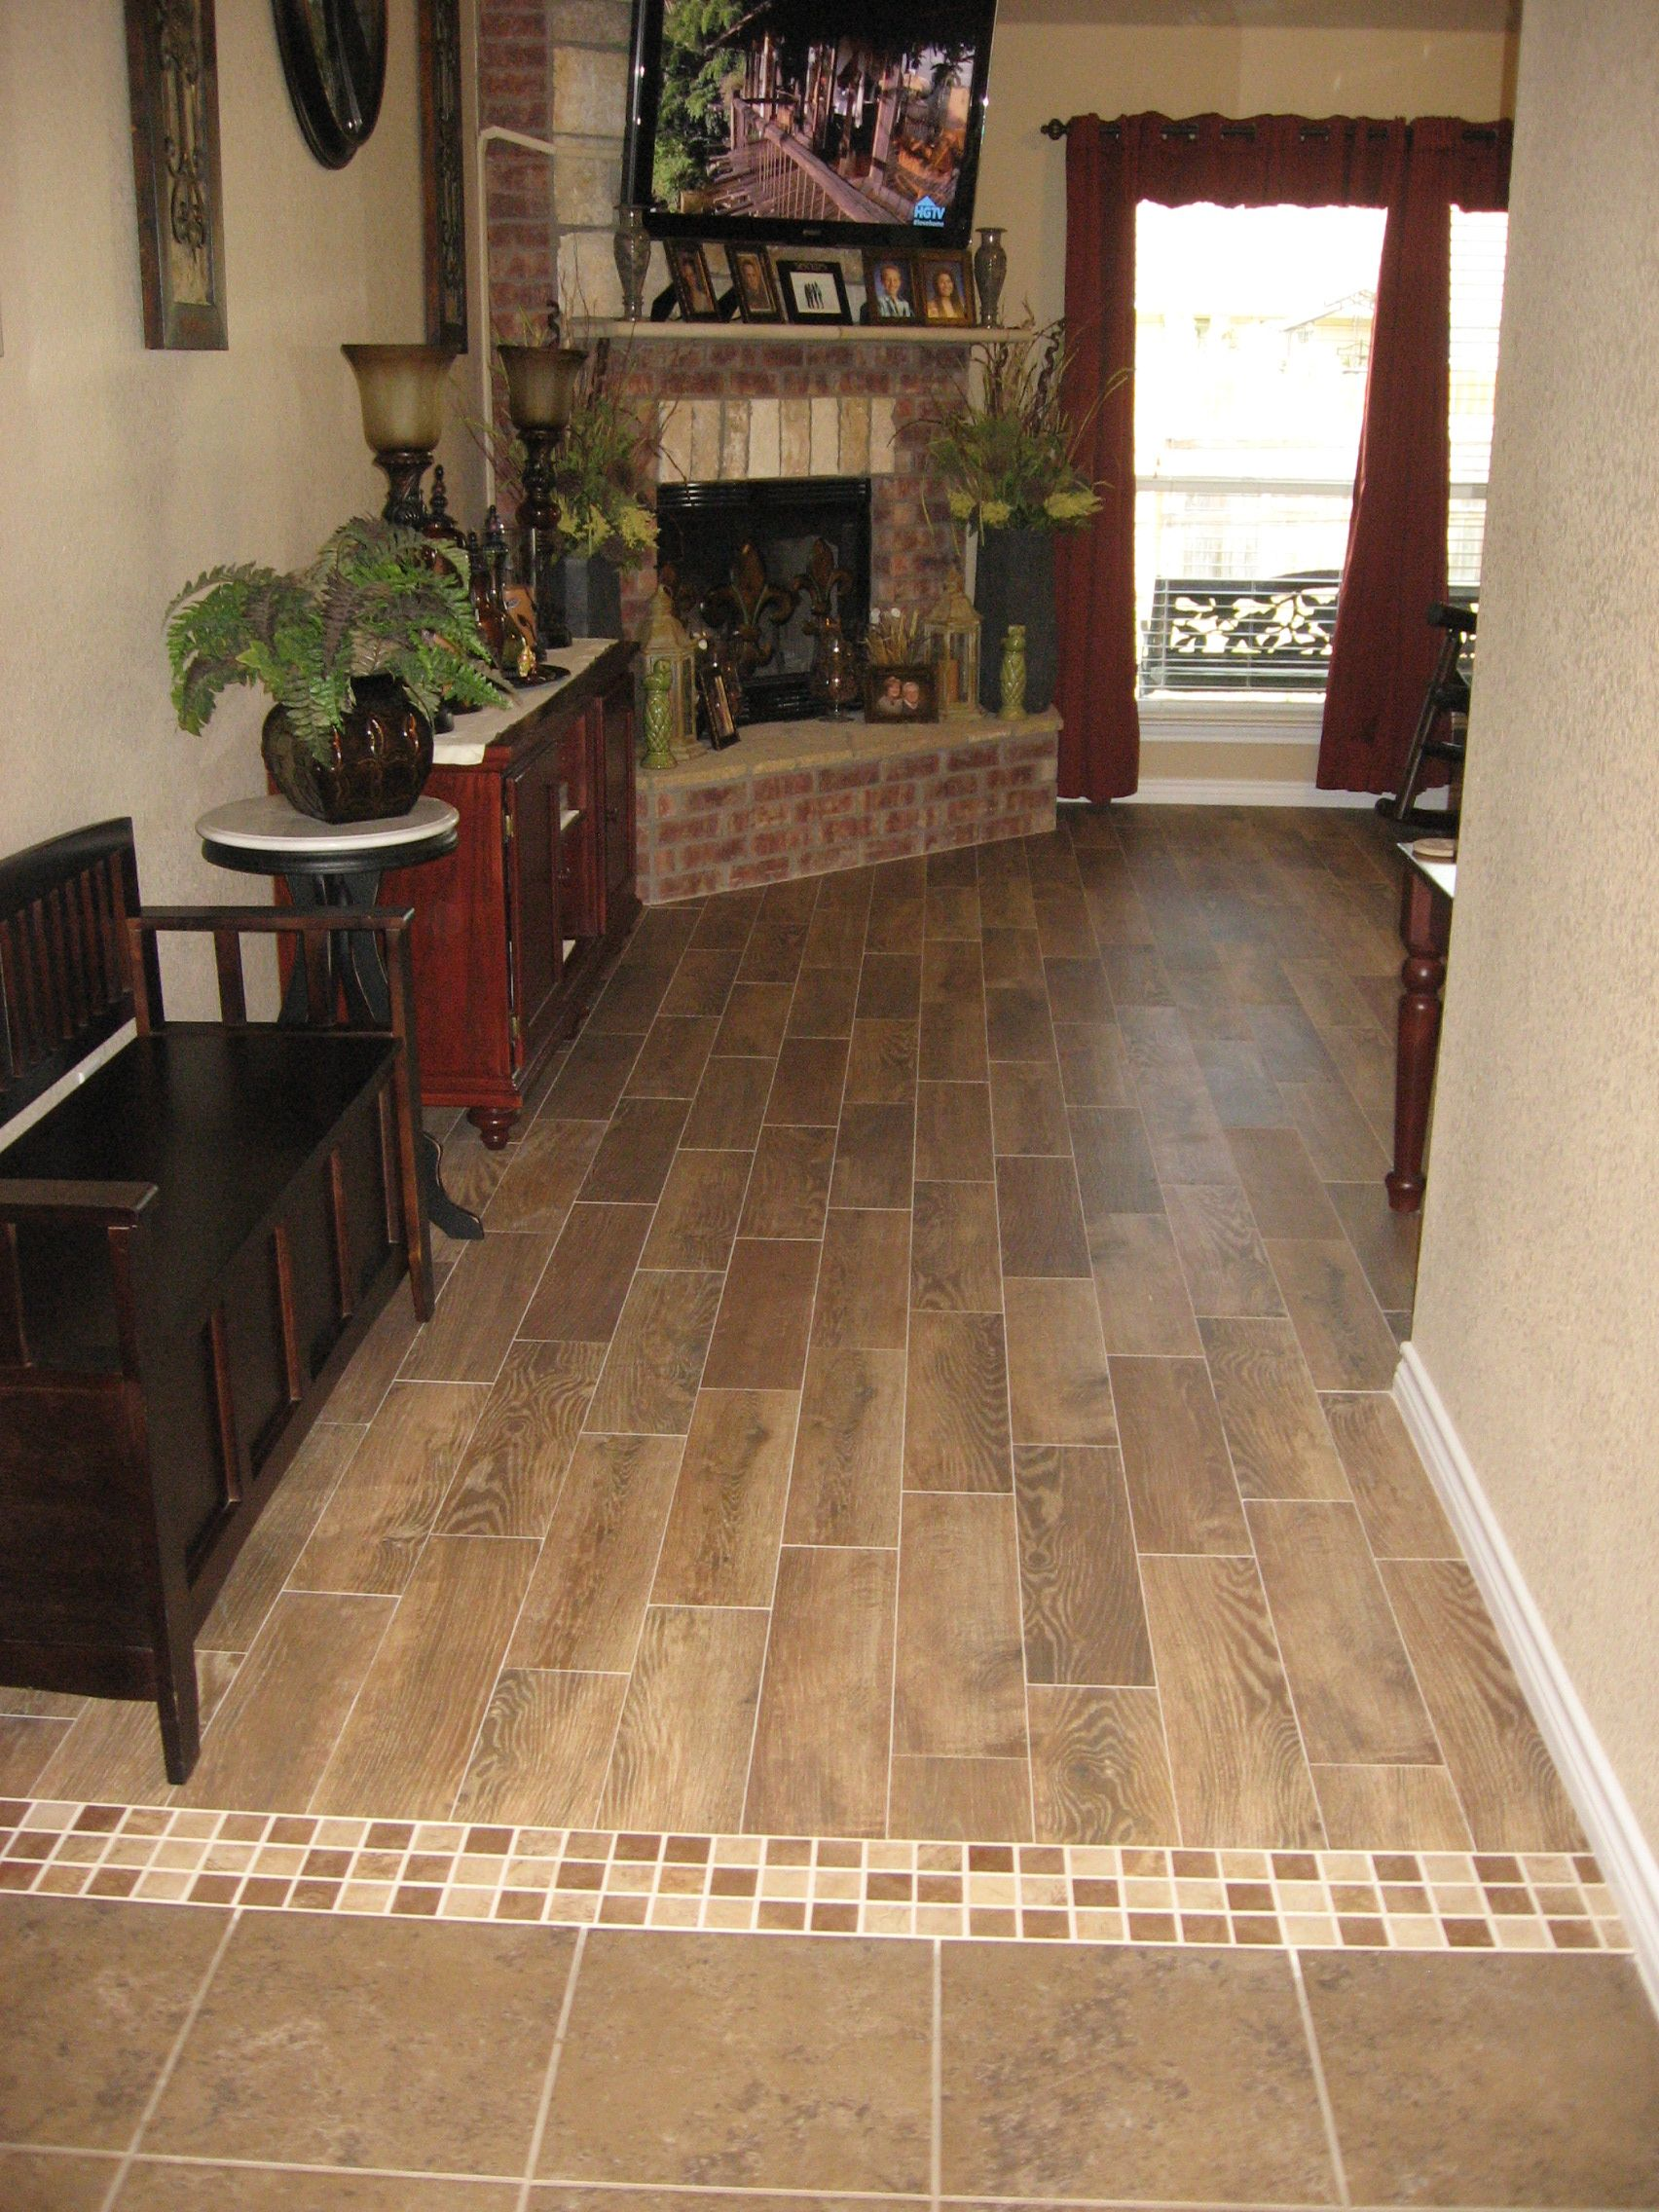 Transition with wood plank tile pinteres transition with wood plank tile more dailygadgetfo Choice Image